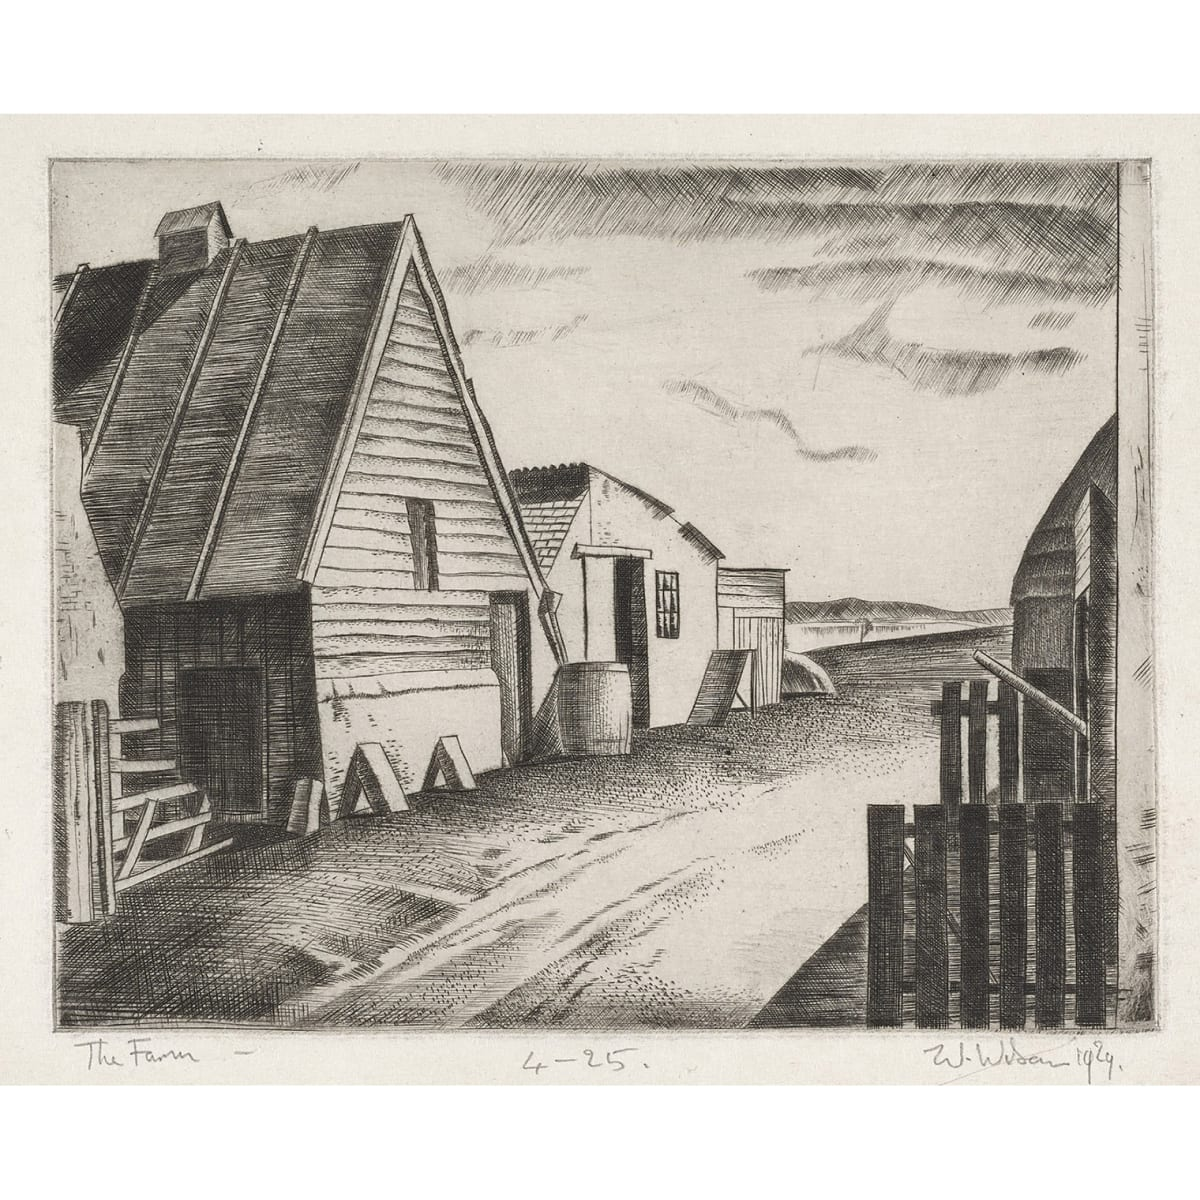 William Wilson The Farm, 1929, 1929 signed, titled, dated 1929 and numbered 4/25 in pencil to margin etching 6 1/4 x 5 inches